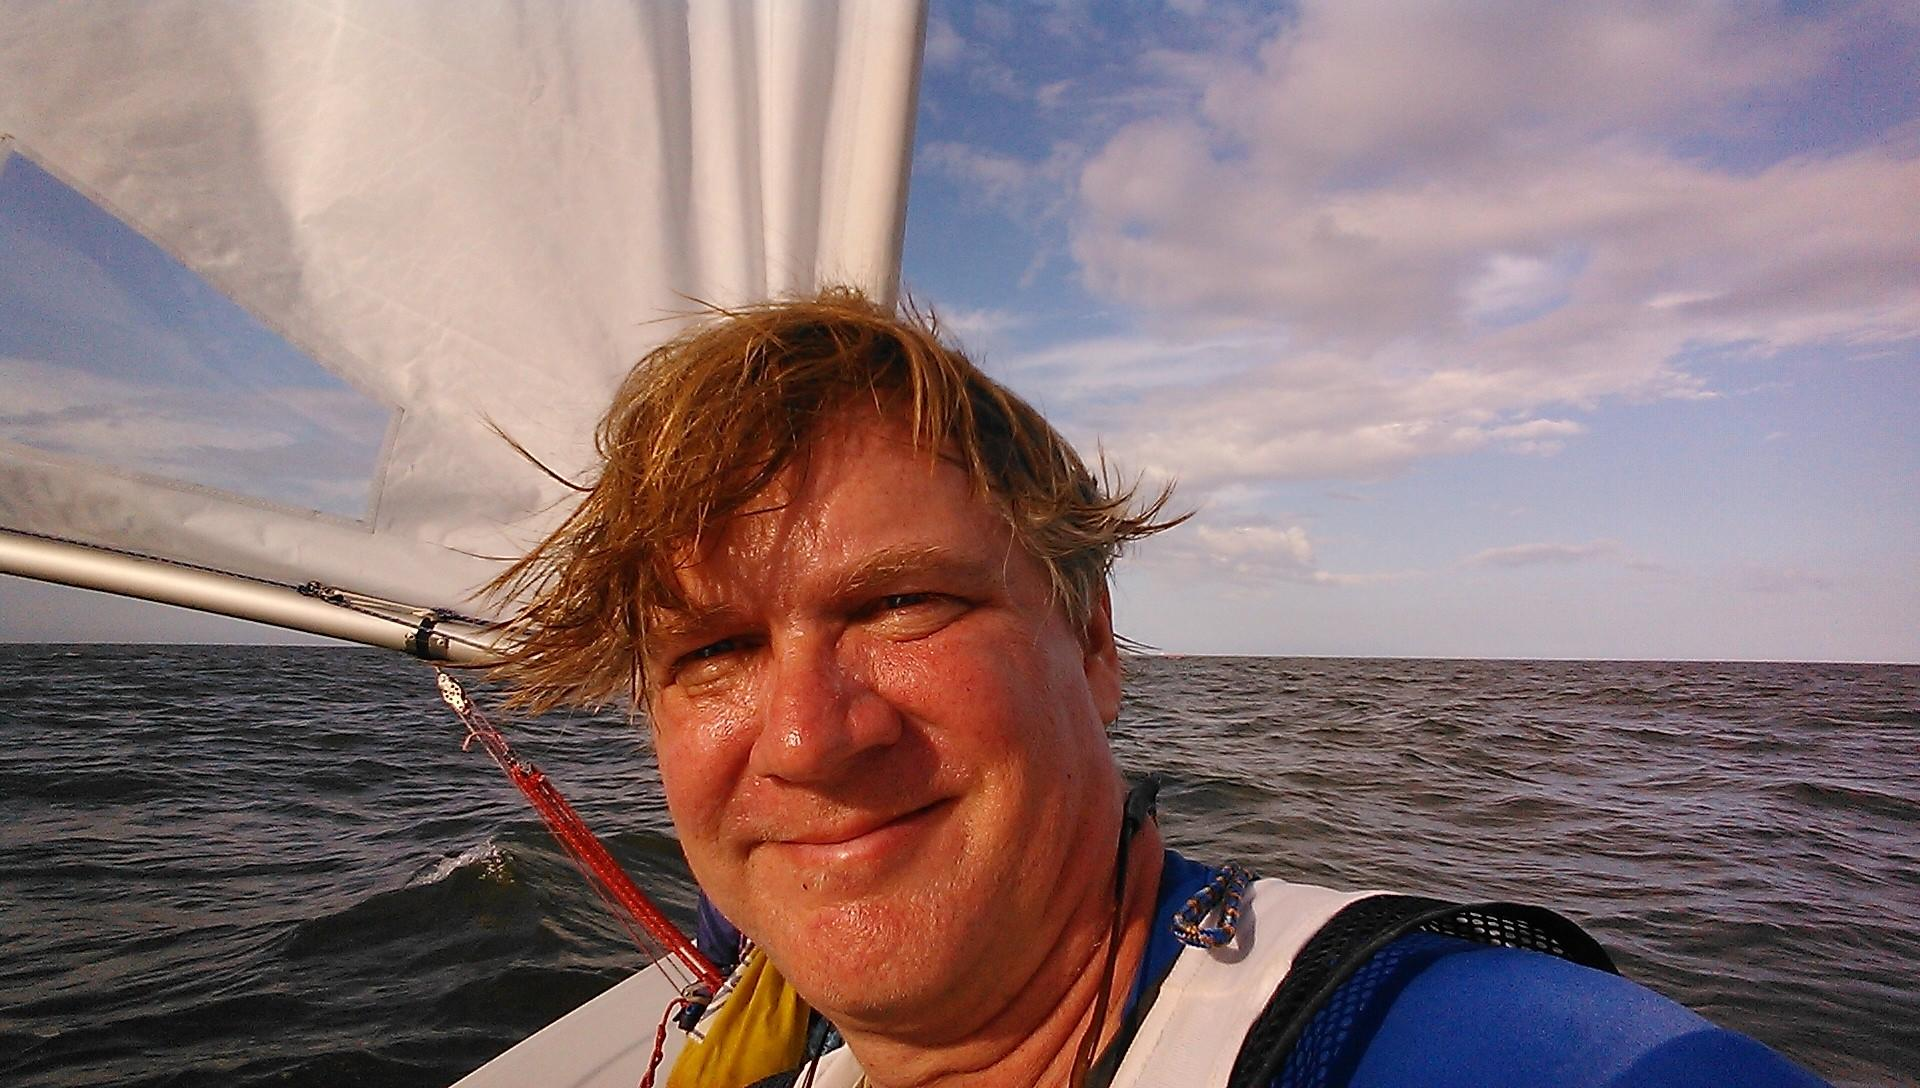 Robert Suhay is trying to set a world record for the longest distance sailed unassisted in a Laser dinghy.